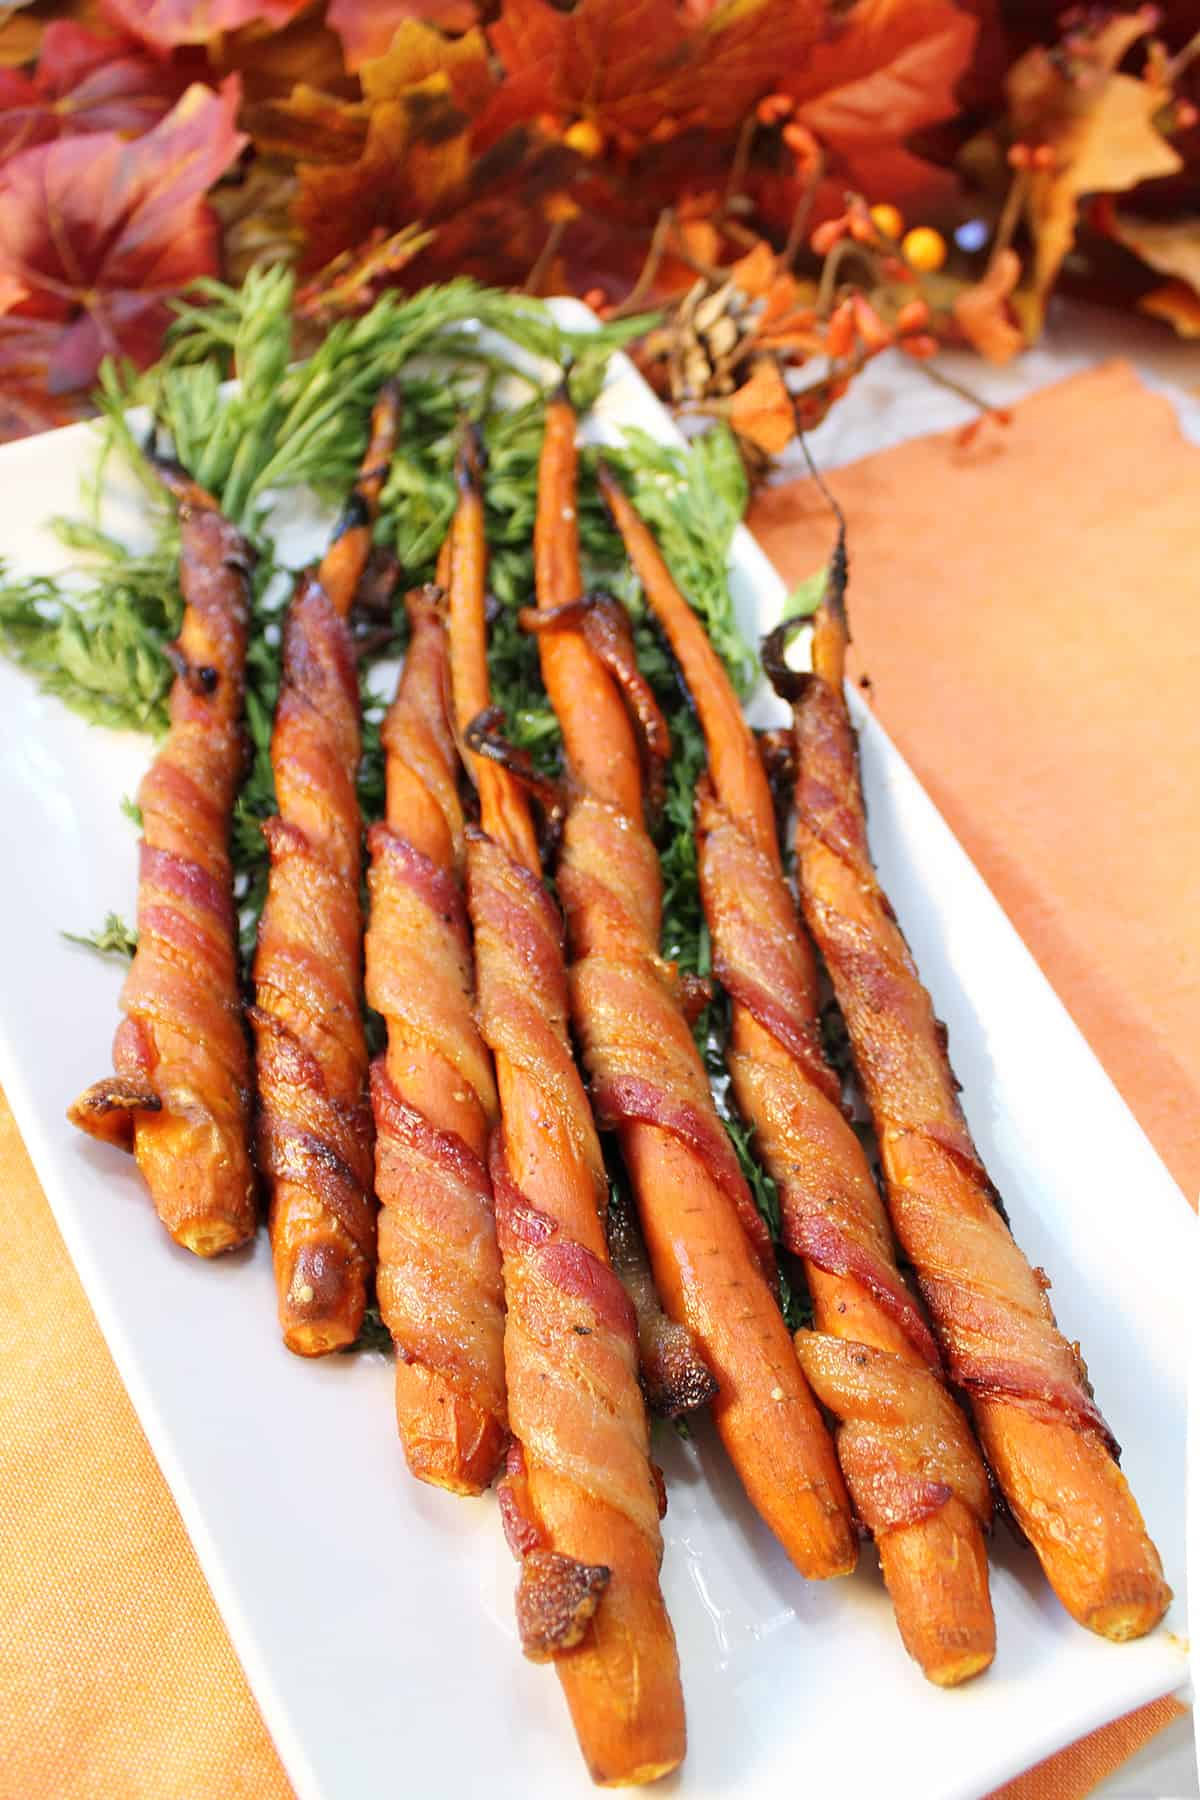 Bacon wrapped carrots on white platter with fall leaves in back.